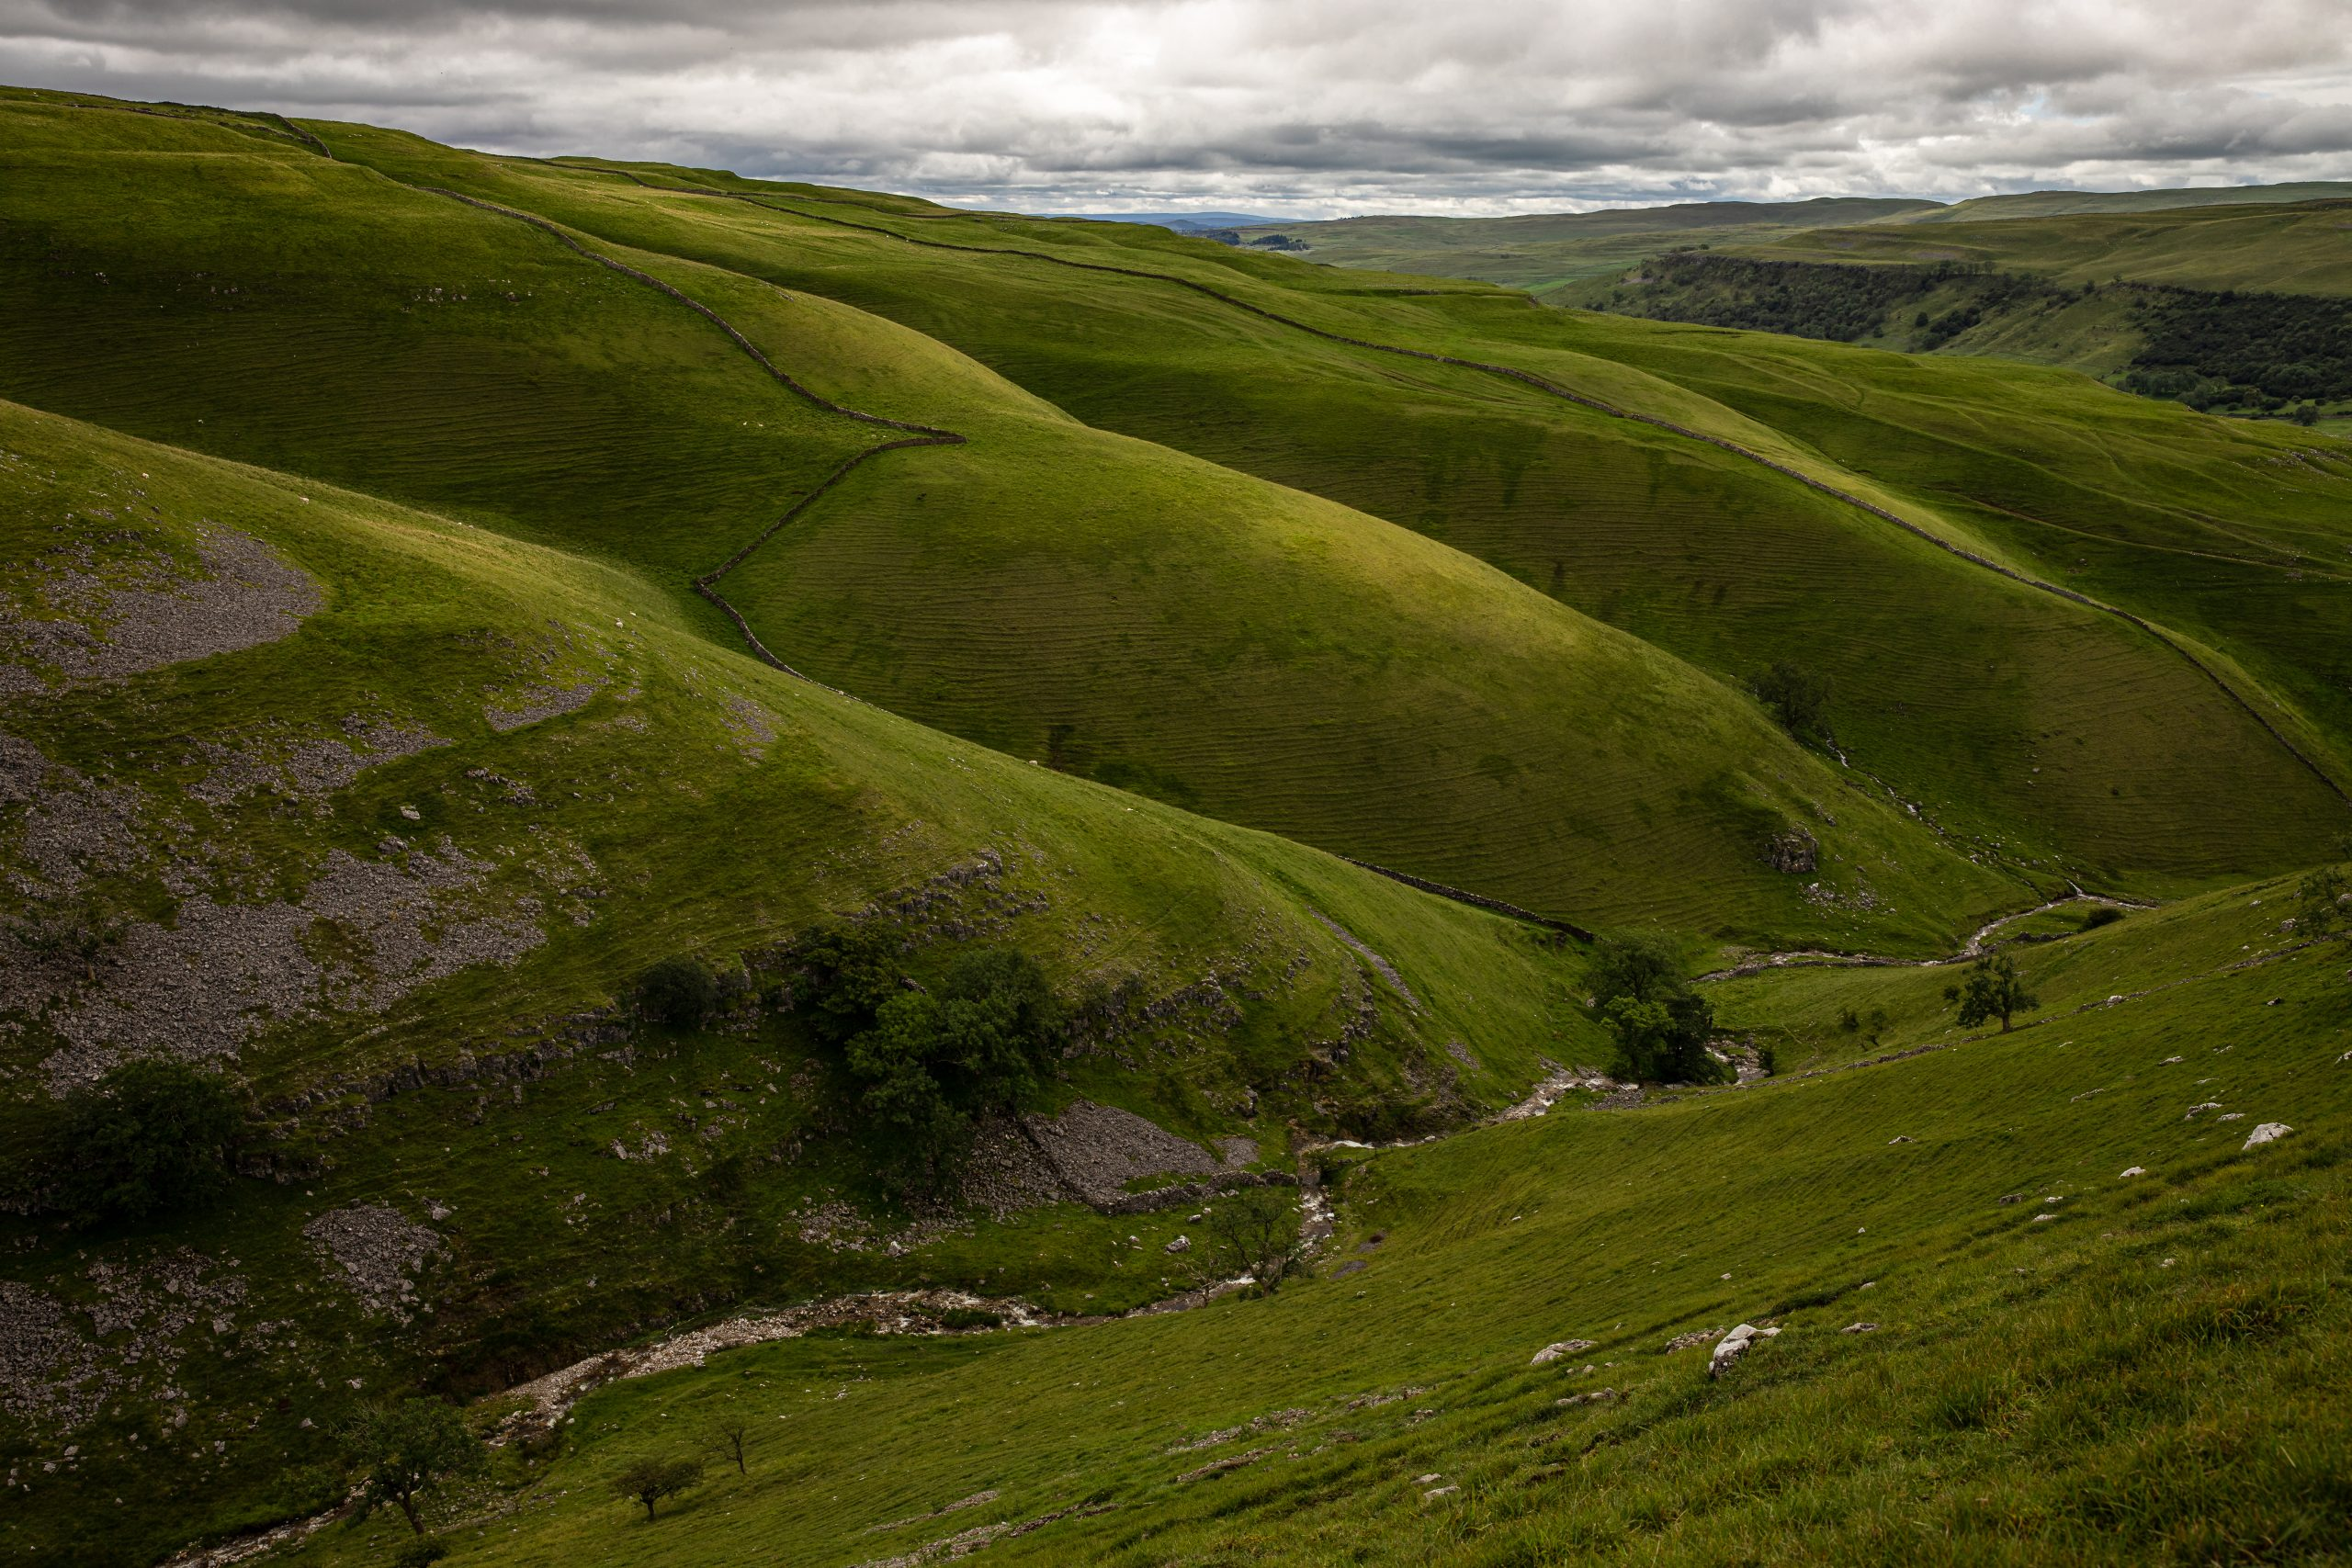 Prominent ridge lines and valleys seen near Hag Dyke on Great Whernside in Wharfedale in the Yorkshire Dales